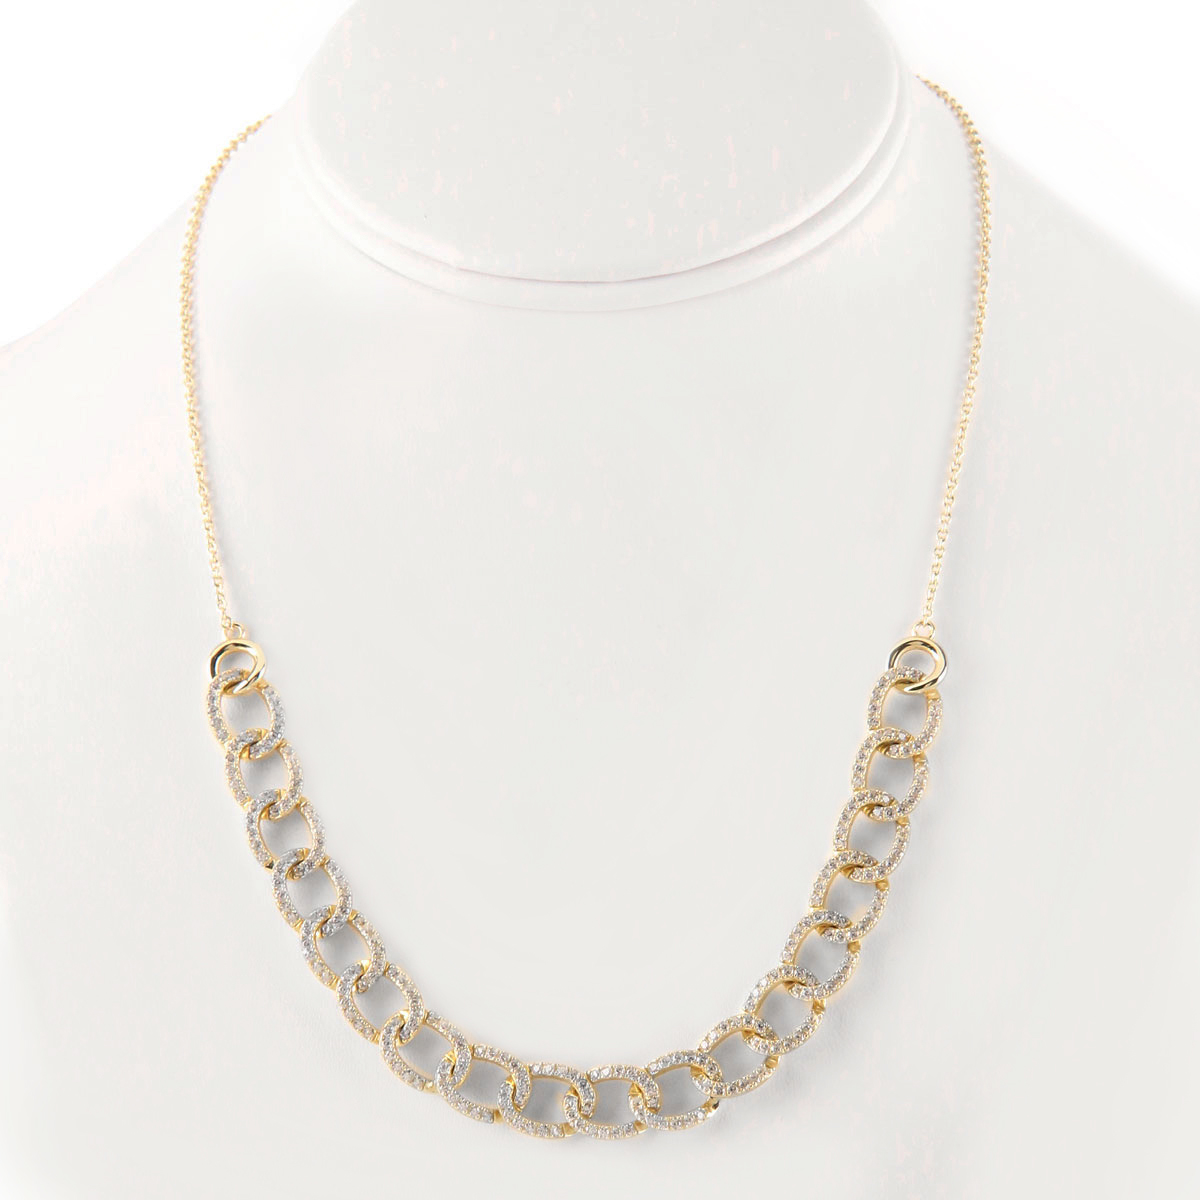 Cashs Ireland, Gold Link Necklace